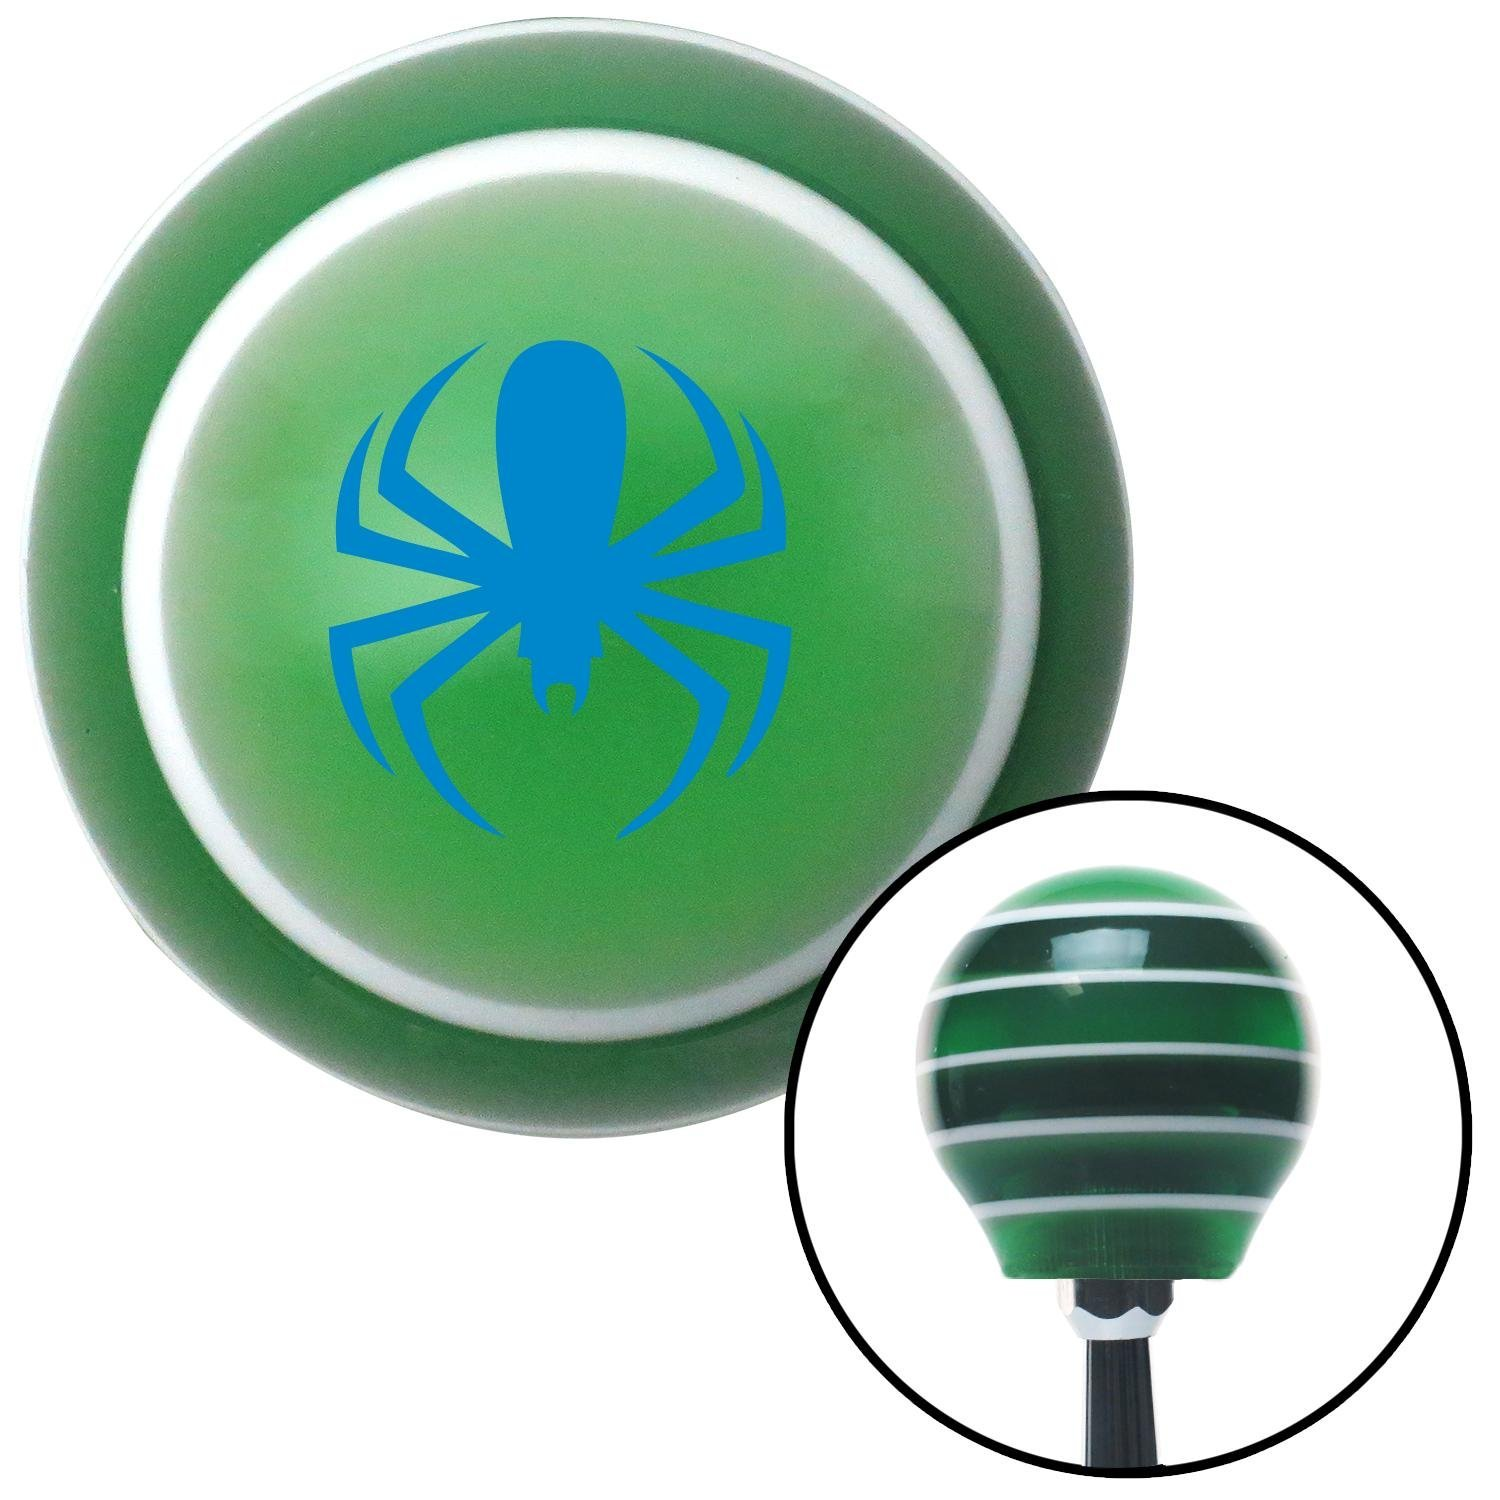 American Shifter 121150 Green Stripe Shift Knob with M16 x 1.5 Insert Blue Spider